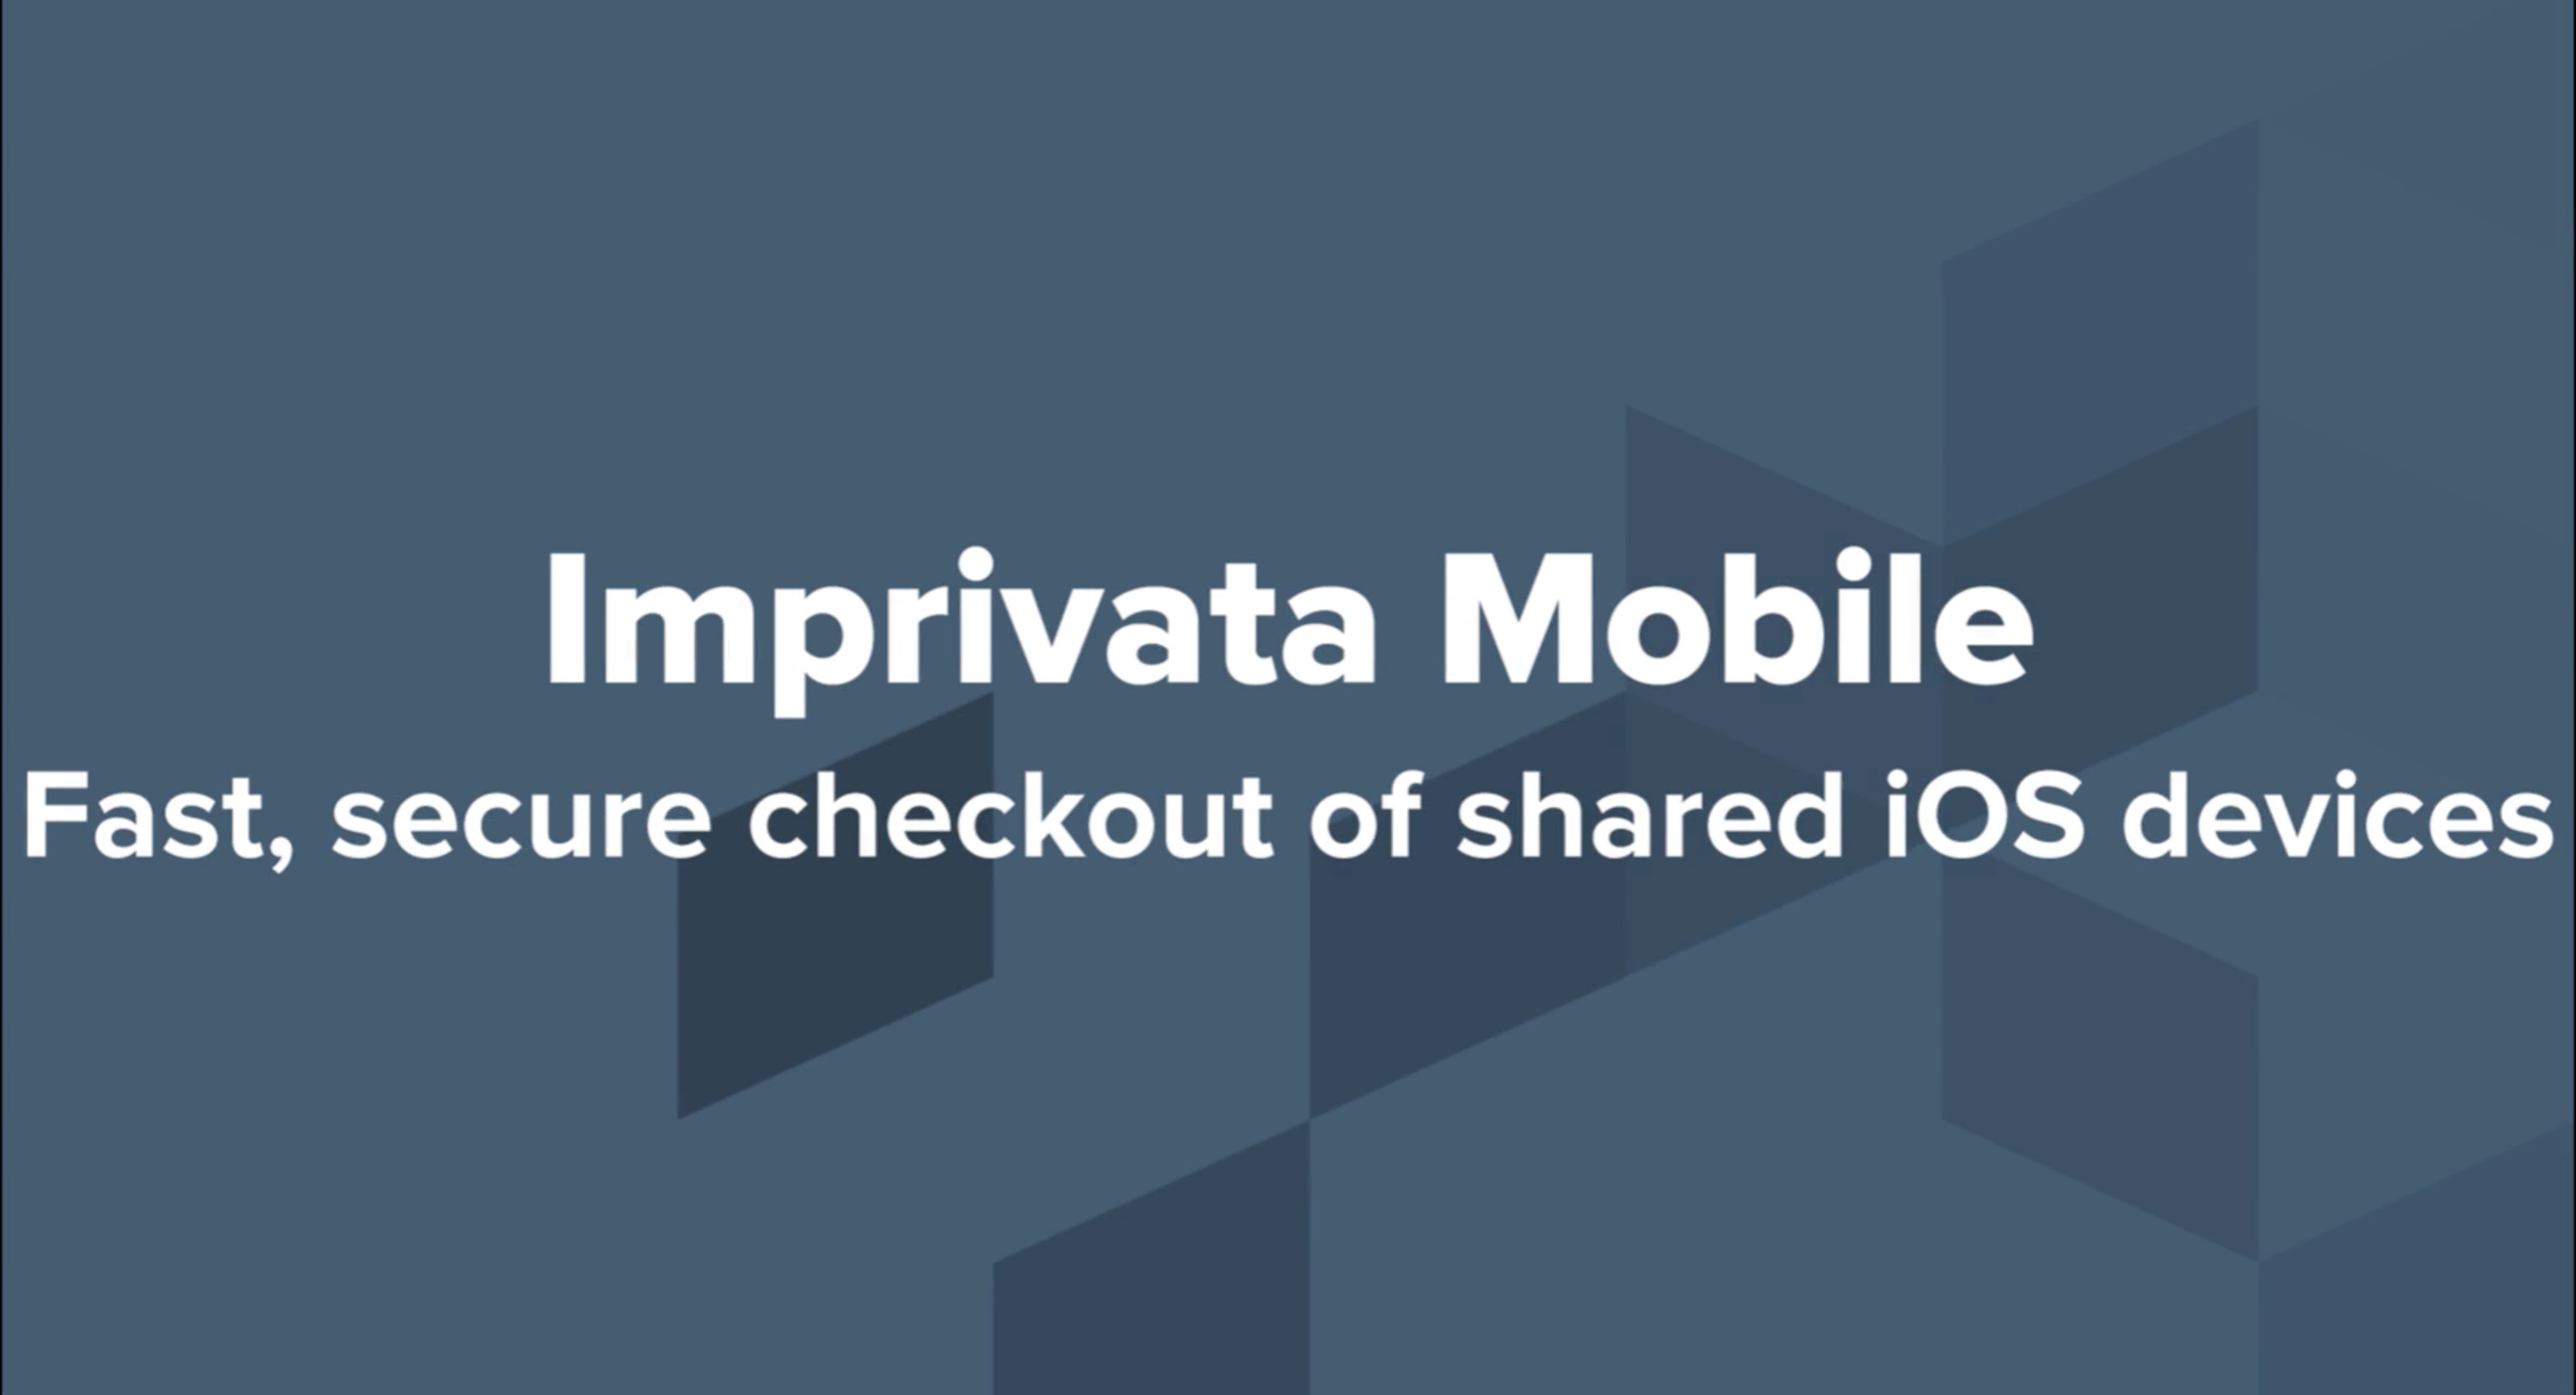 Imprivata Mobile – iOS Check-Out demonstration